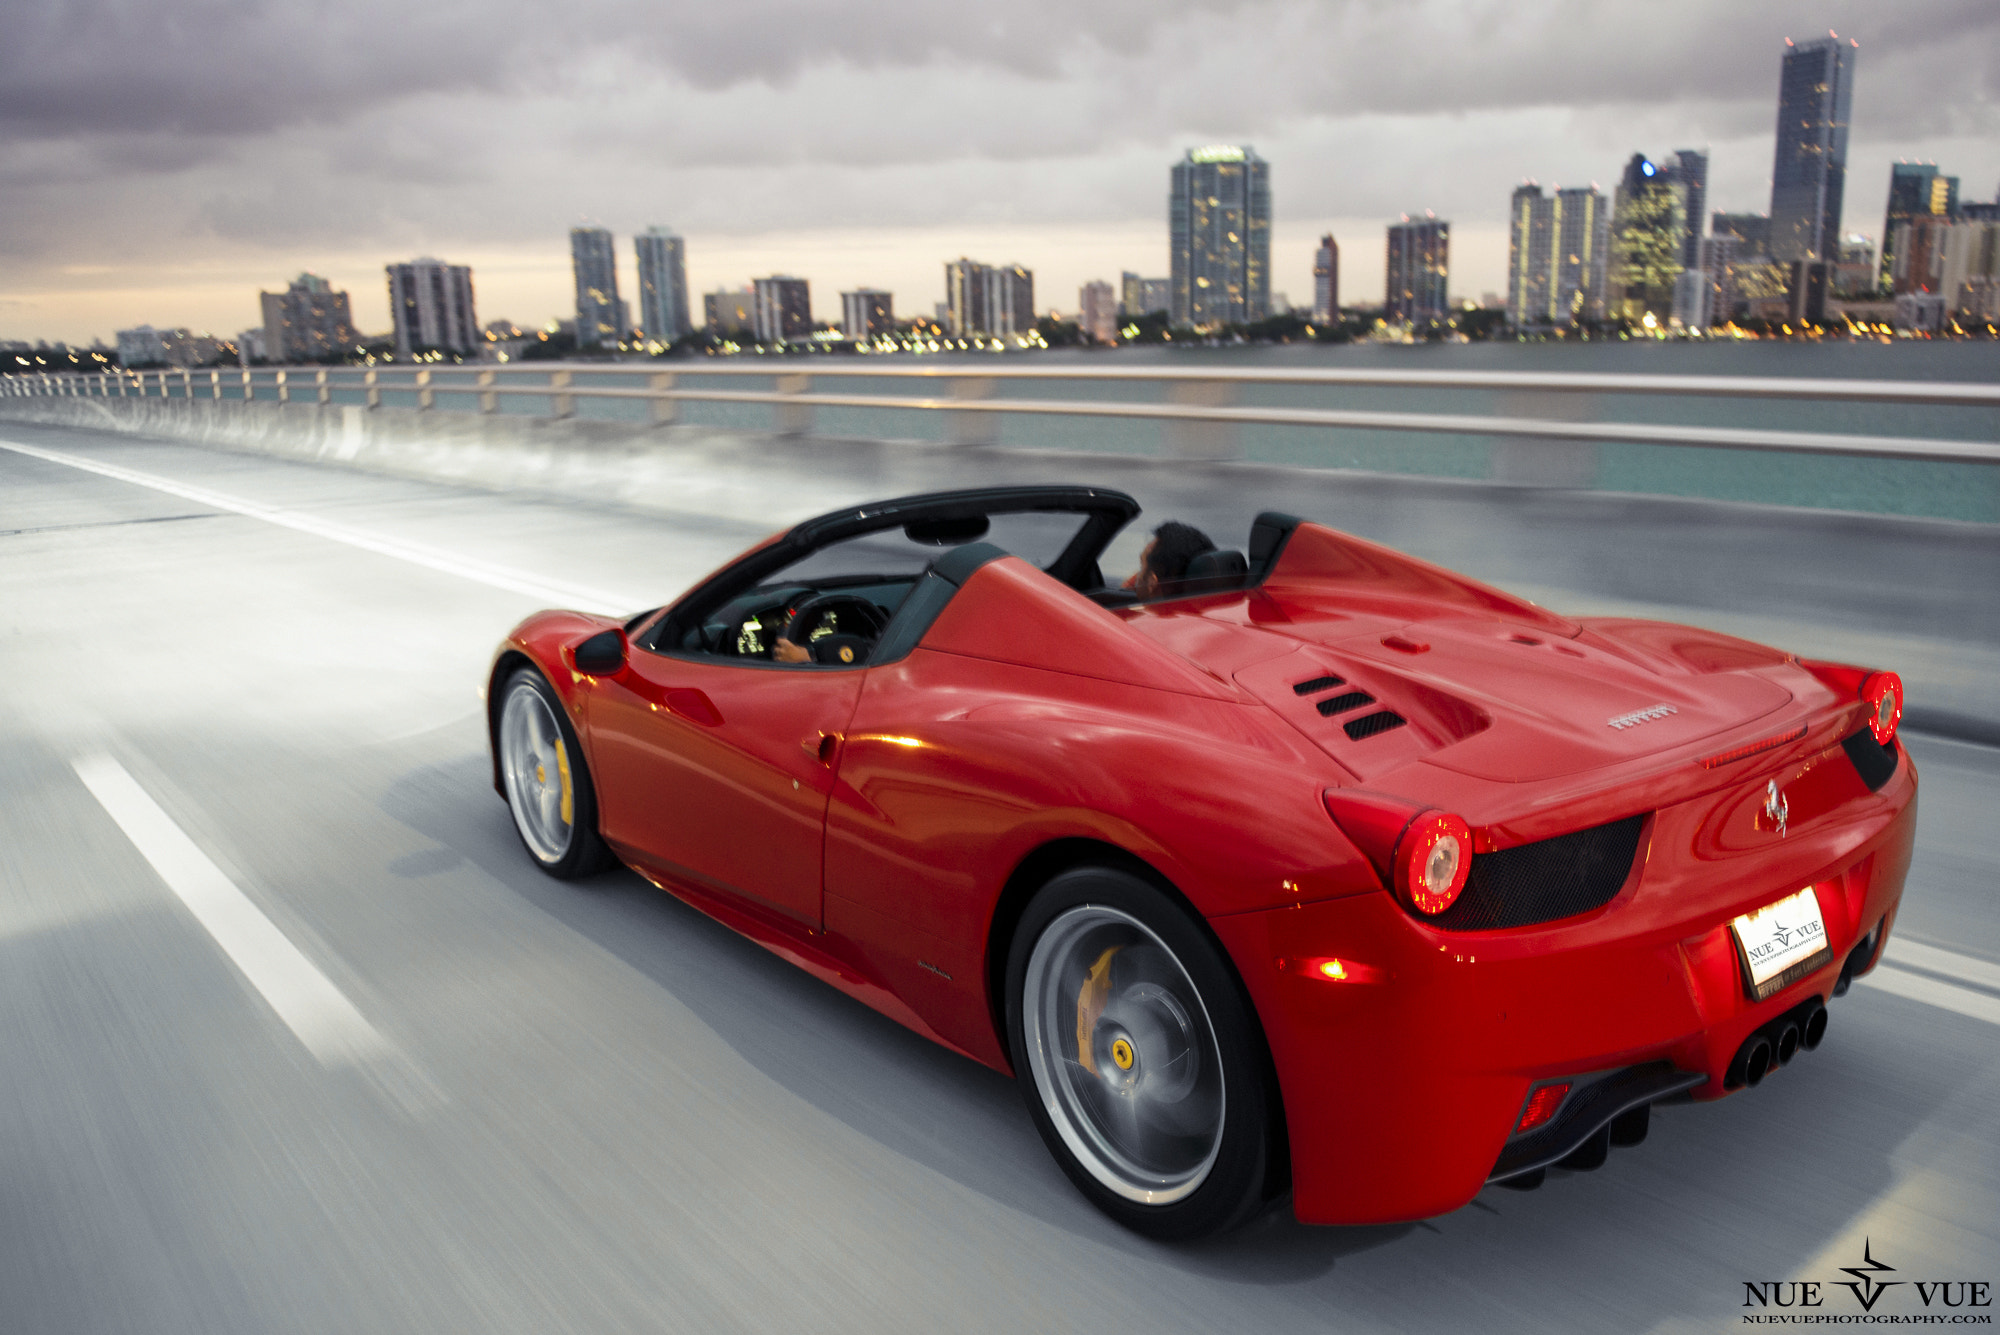 Photograph Ferrari 458 Spider by Nue Vue on 500px